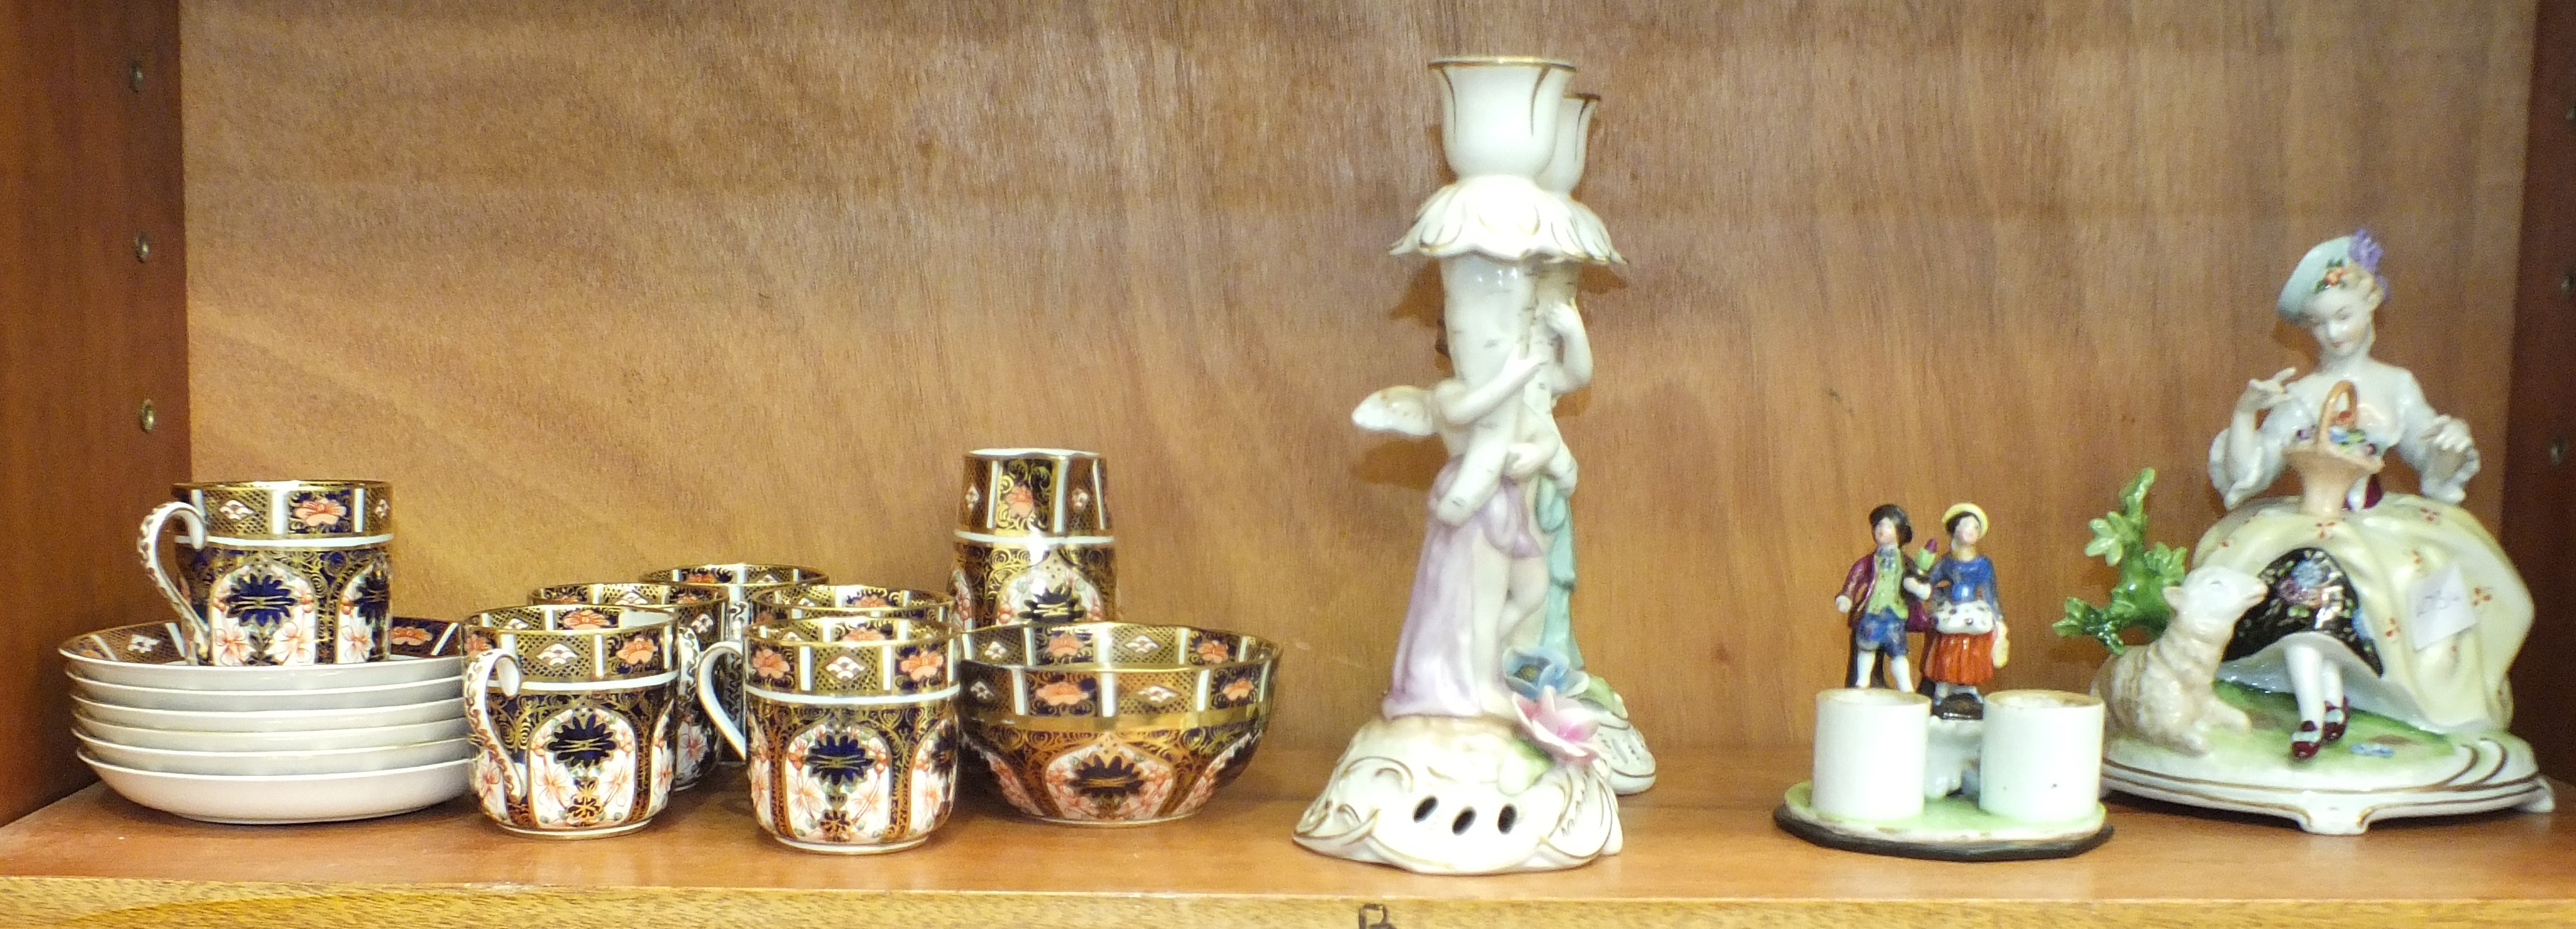 Lot 139 - A Royal Crown Derby coffee service, comprising six each coffee cans and saucers, cream jug and